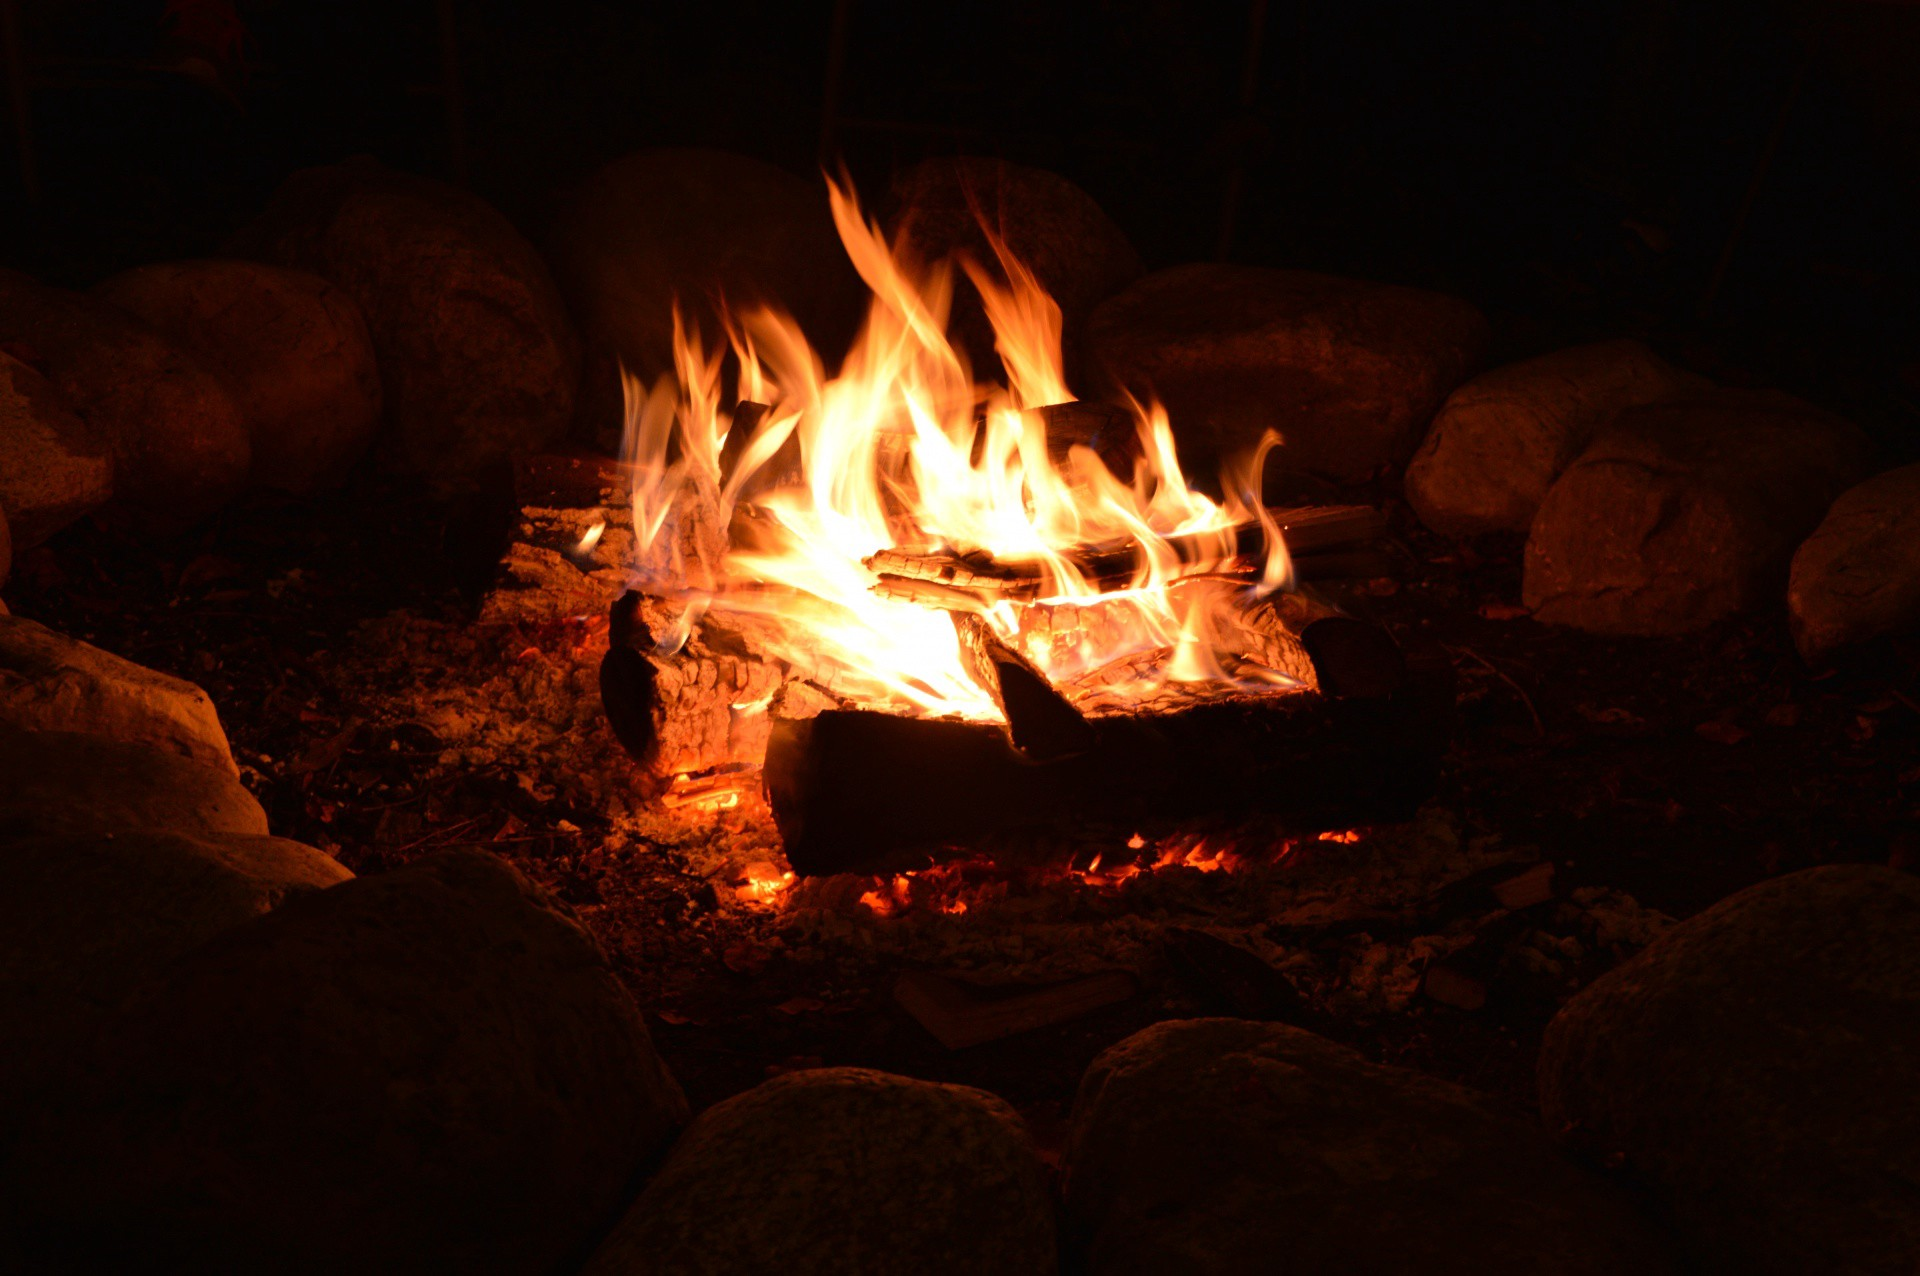 Autumn Night Fire Pit : The fire pit on a autumn night poets unlimited medium